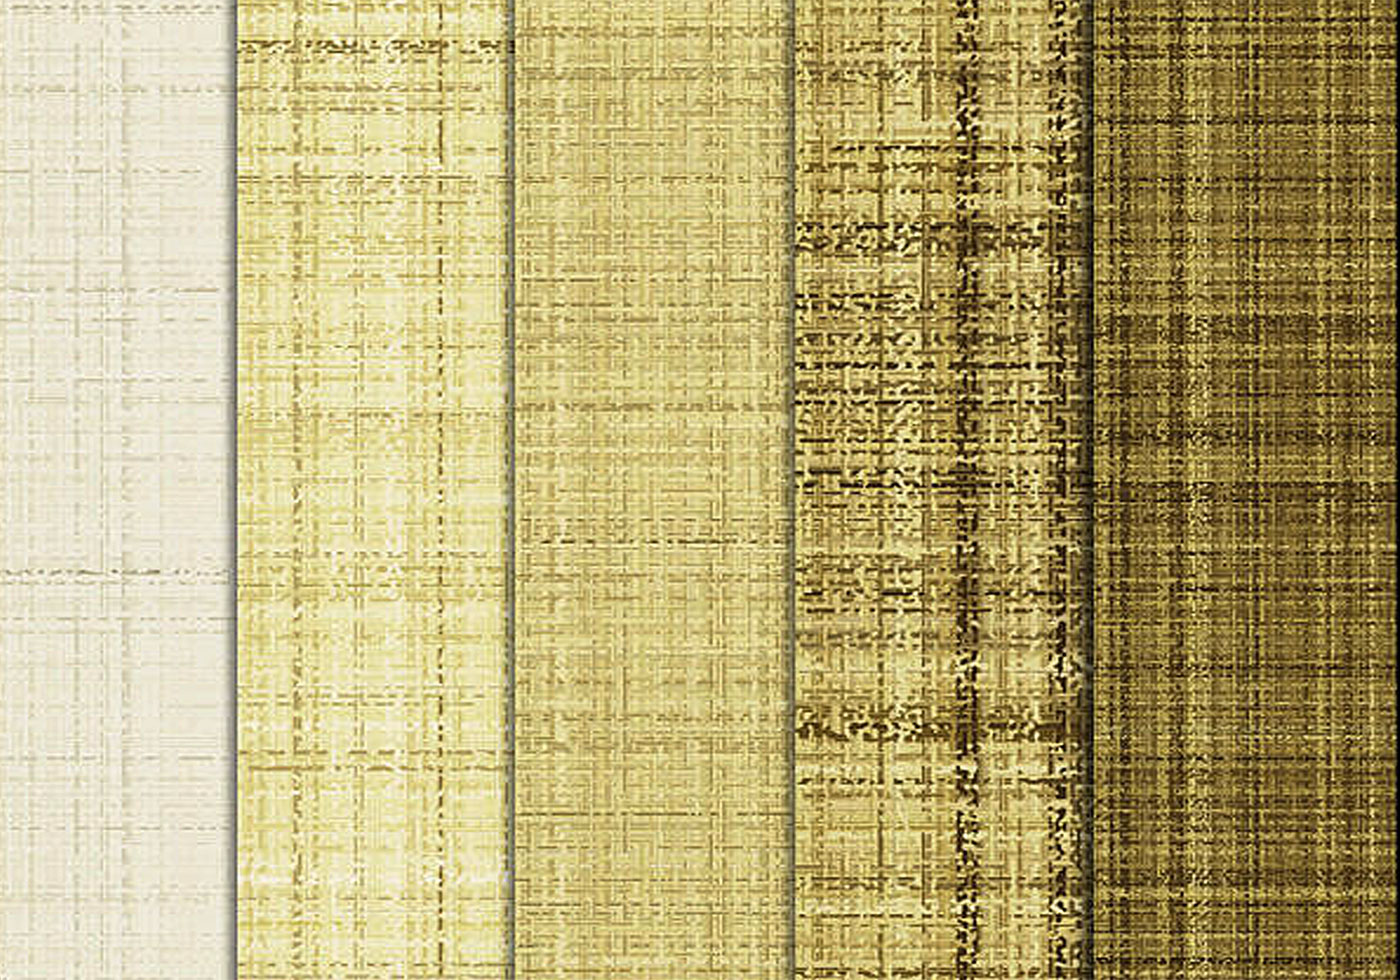 e3098a279 Fabric texture pattern modern pin molly o connell on faux jpg 1400x980  Texture grey modern fabric